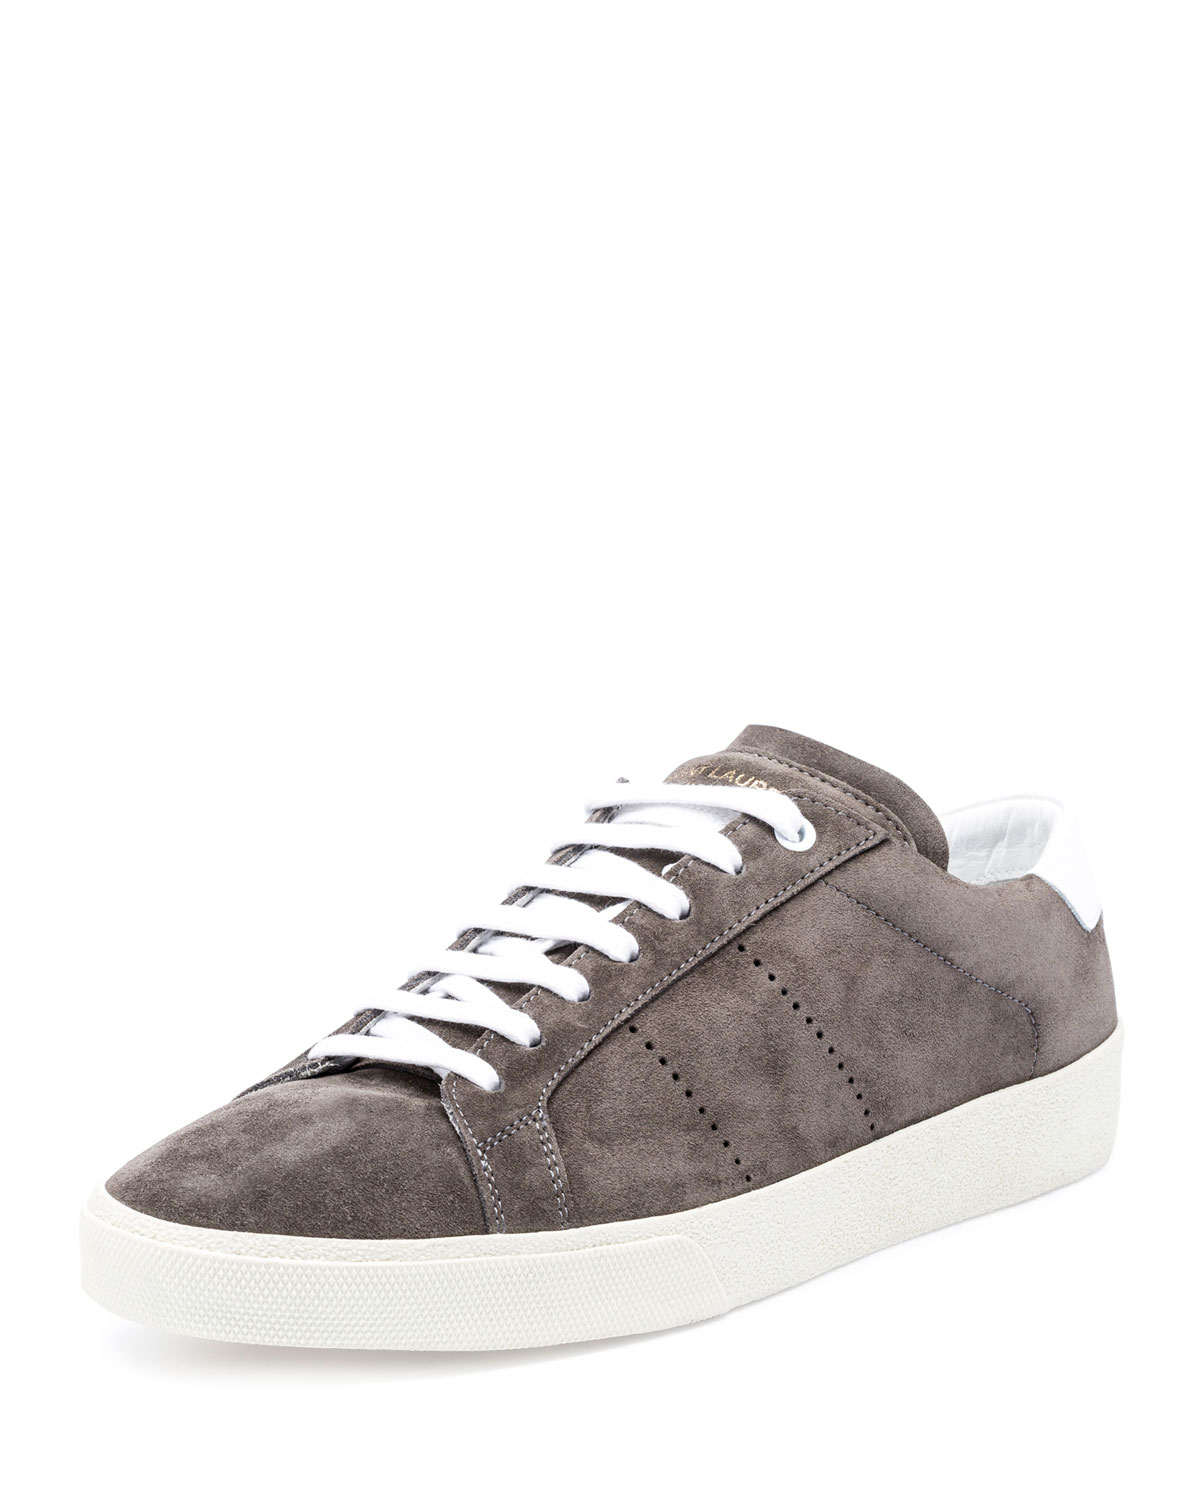 2928bb875ab Saint Laurent Men's SL/06 Suede Low-Top Sneakers, Gray | Neiman Marcus